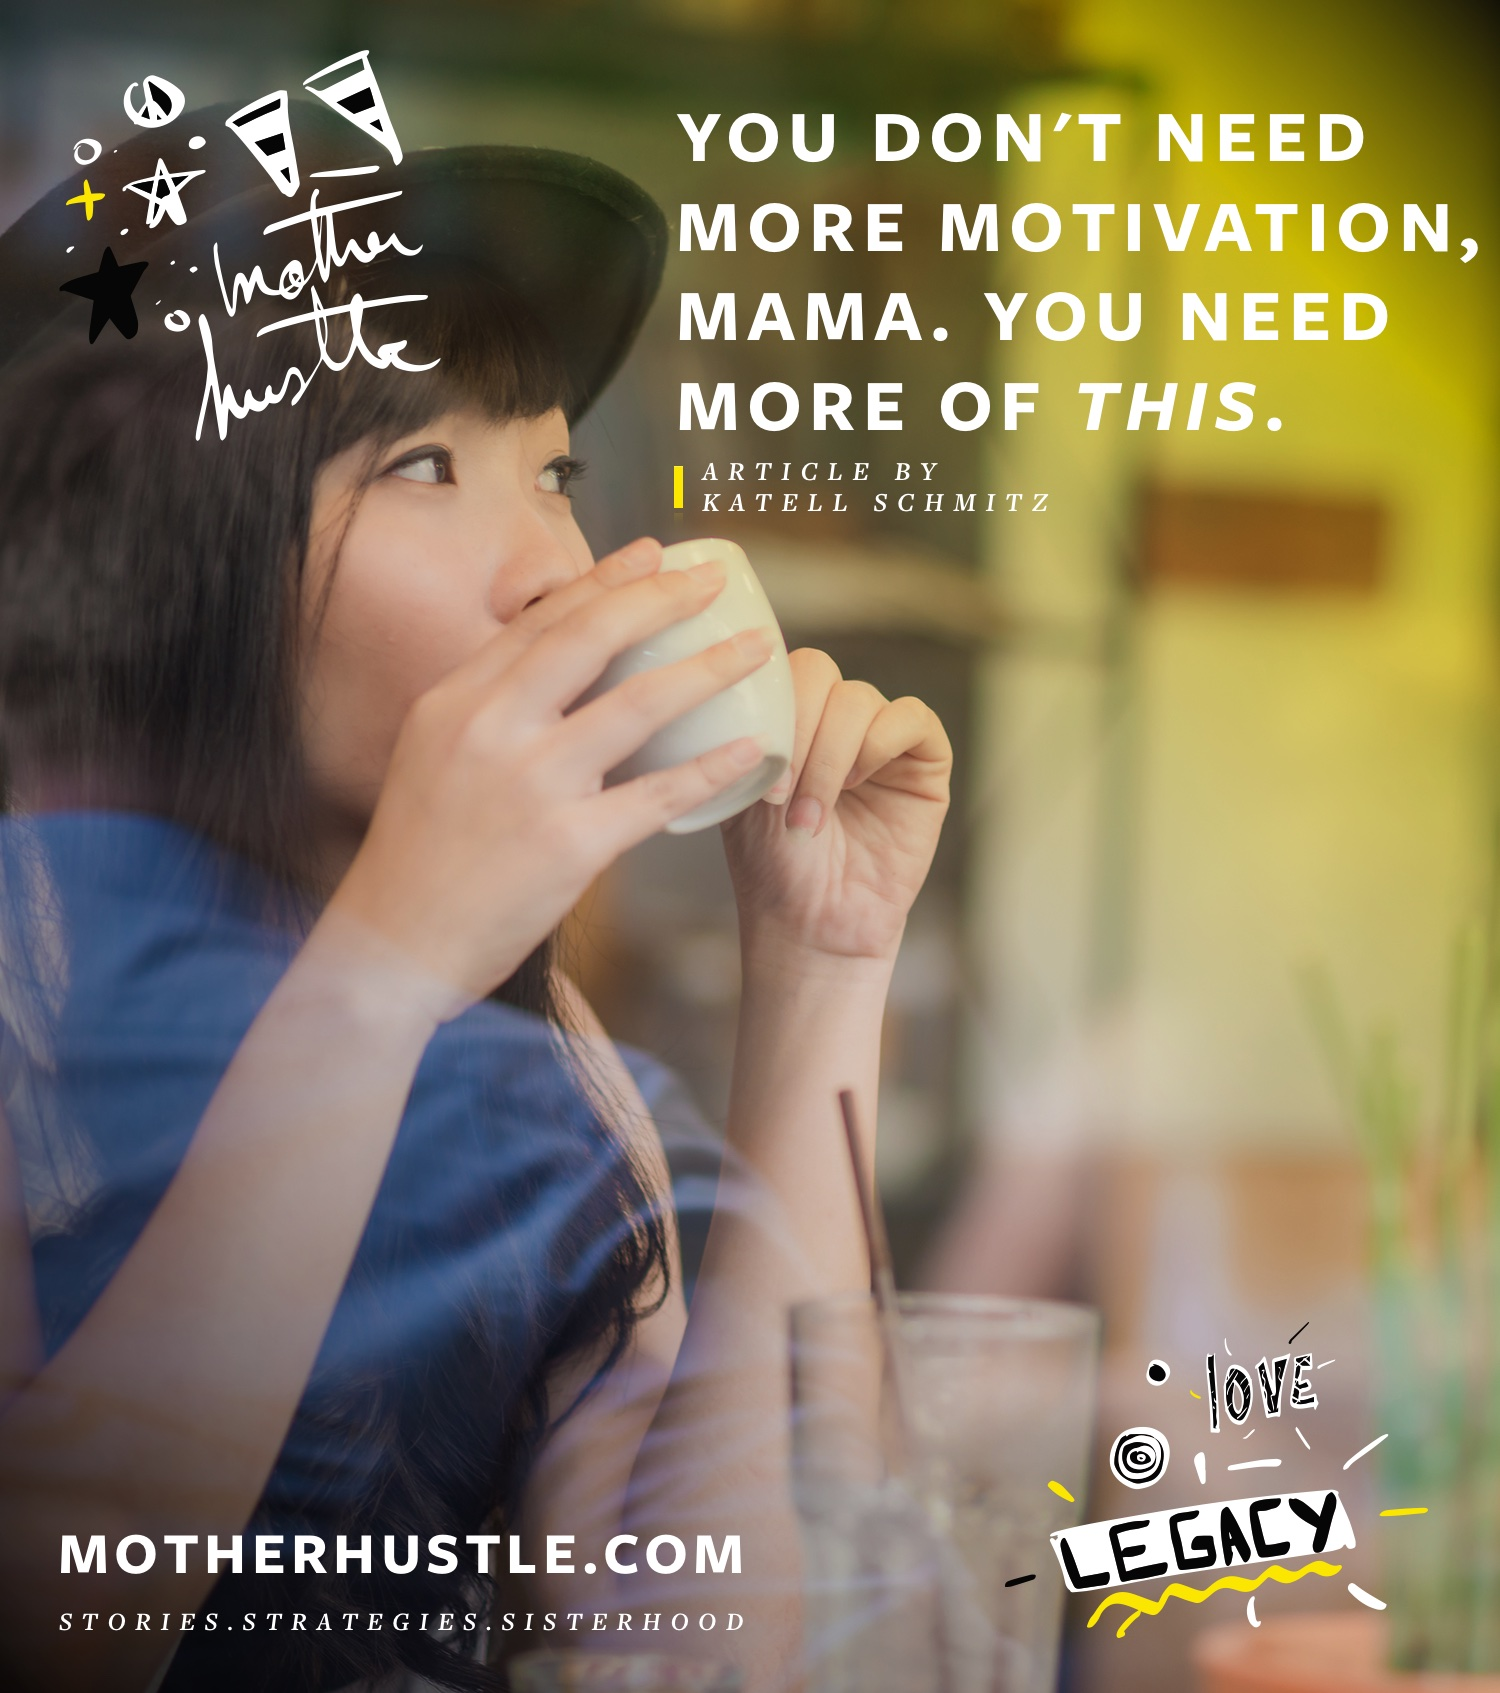 You Don't Need More Motivation, Mama. You Need More of THIS. - By Katell Schmitz of MotherHustle